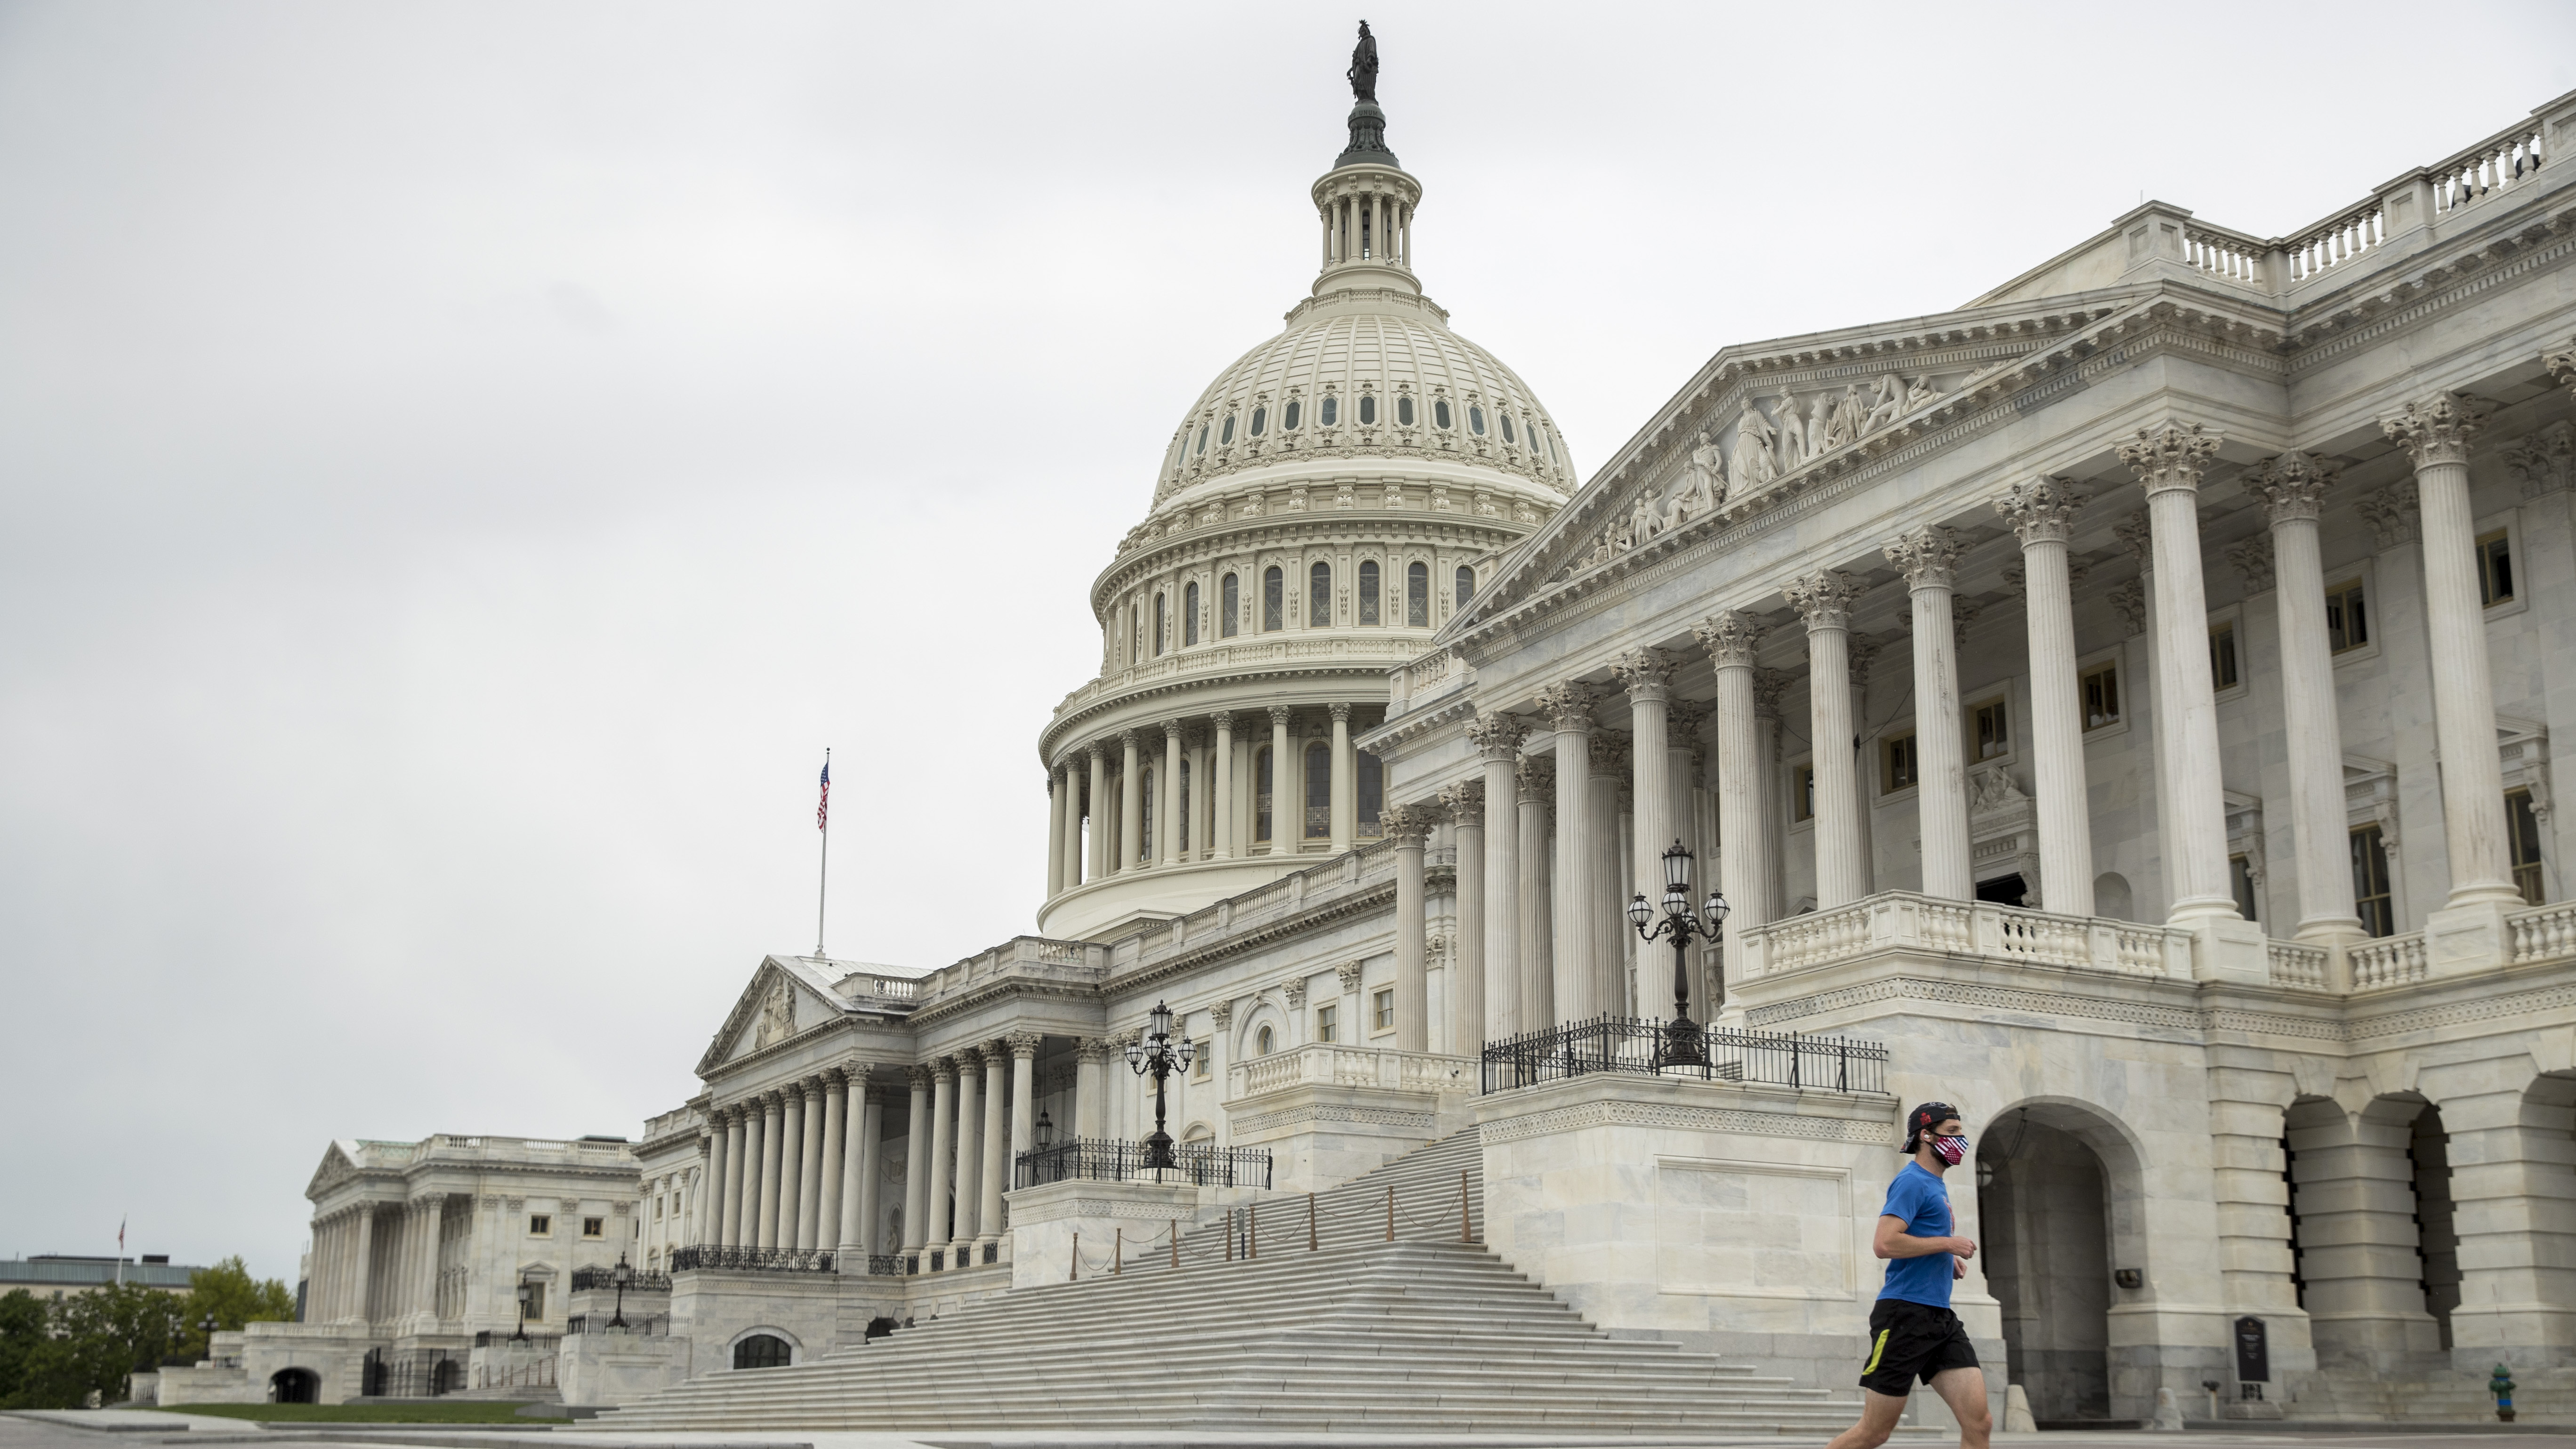 The Senate Banking Committee on Tuesday heard testimony about coronavirus economic relief efforts from Treasury Secretary Steven Mnuchin and Federal Reserve Chairman Jerome Powell.